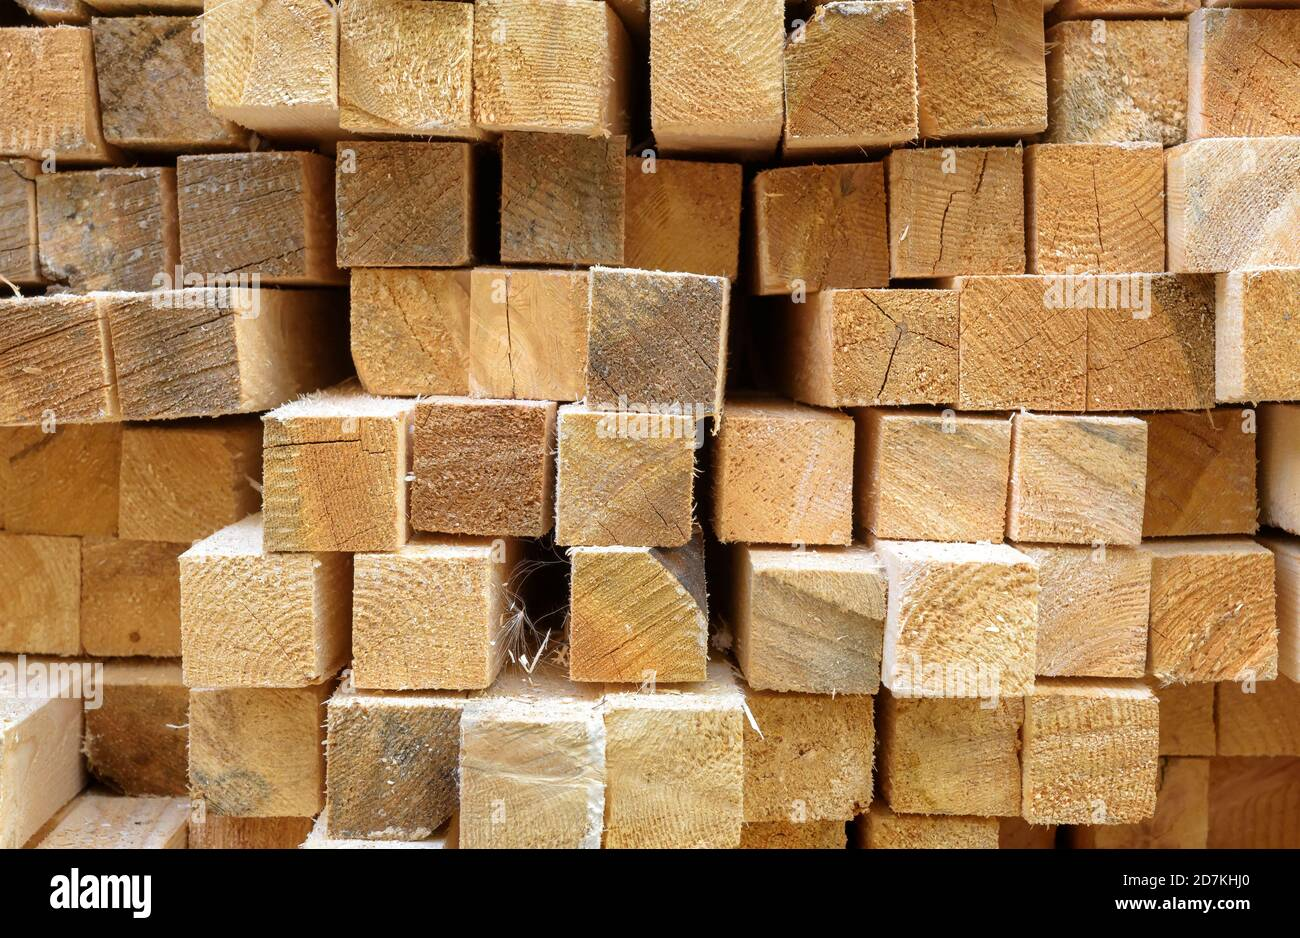 Lumber in sawmill, ends of timber blocks for texture background. Sawed and processed wood in warehouse, timber stack in factory yard. Pile of wooden b Stock Photo